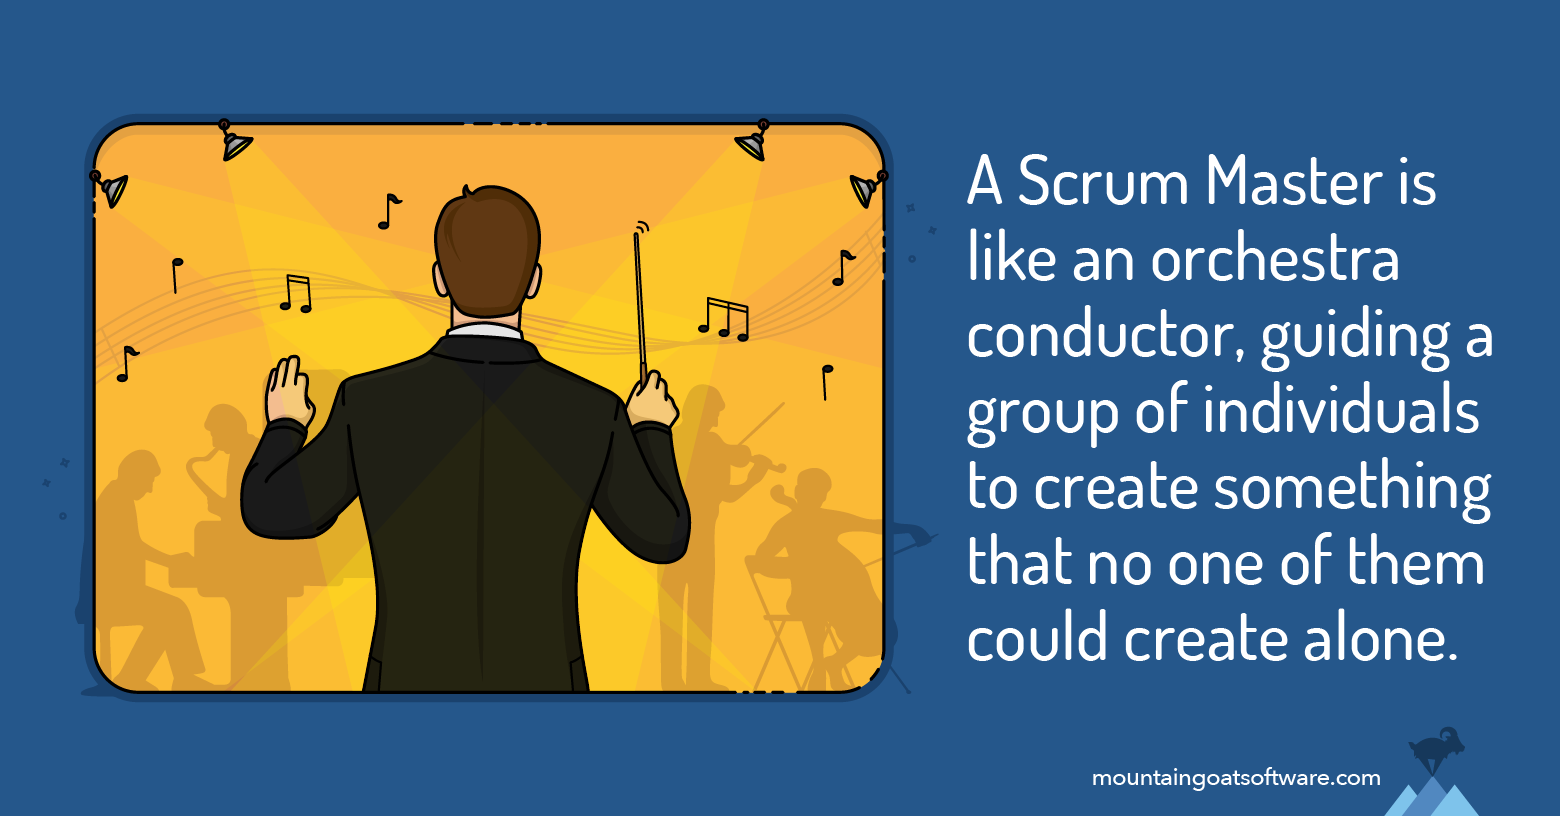 Eight Tips to Become the Scrum Master Your Team Needs